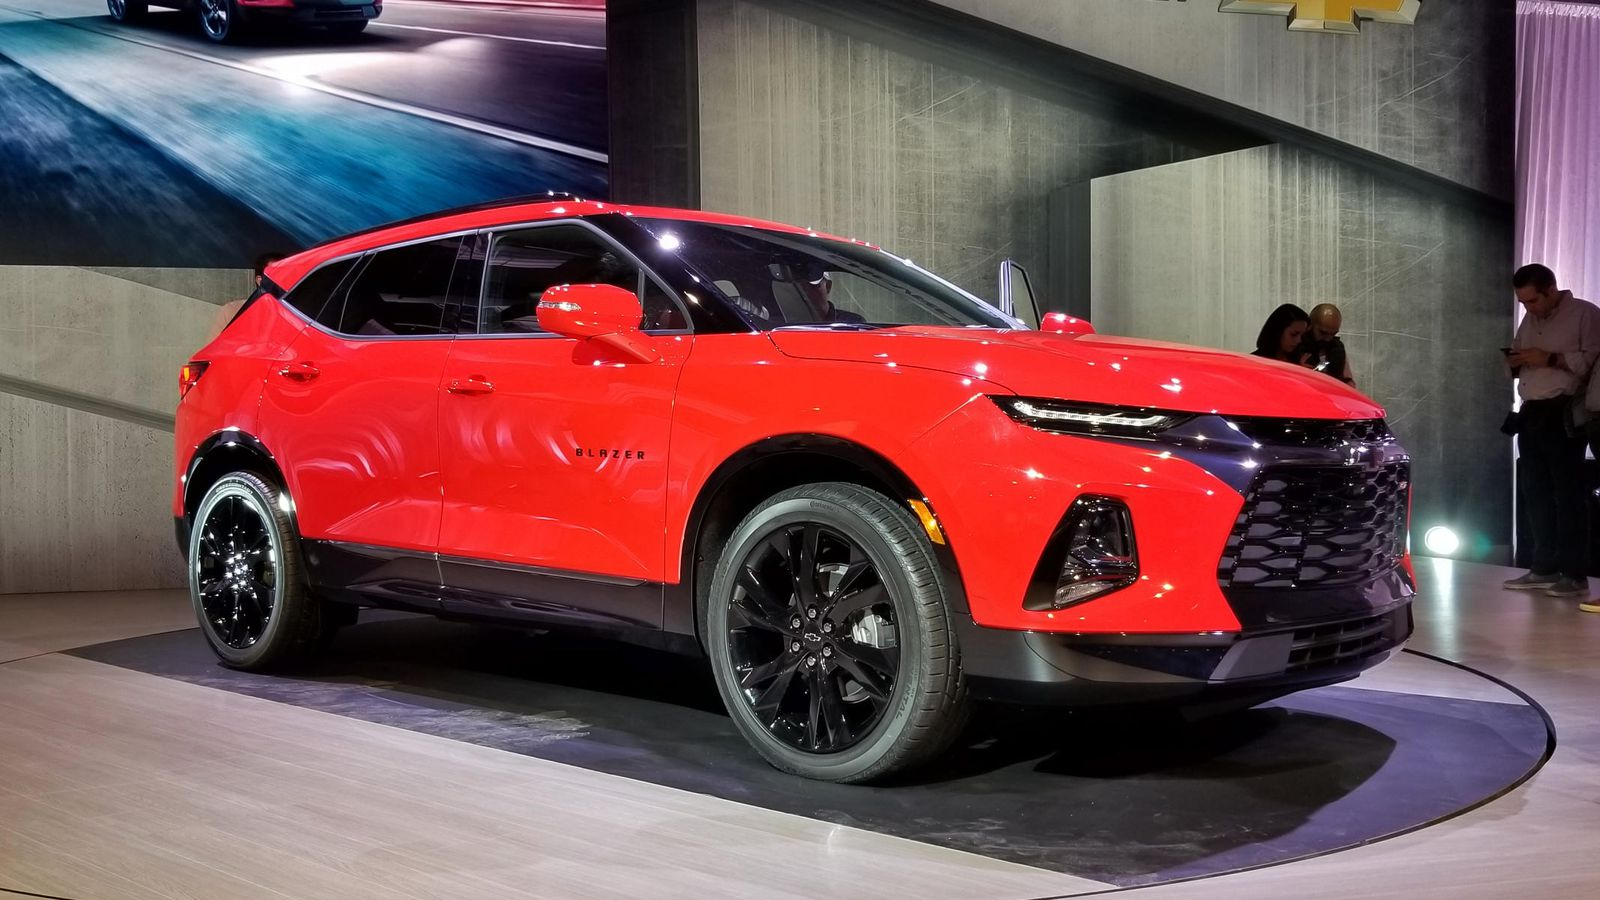 45 A 2019 Chevy Trailblazer Photos